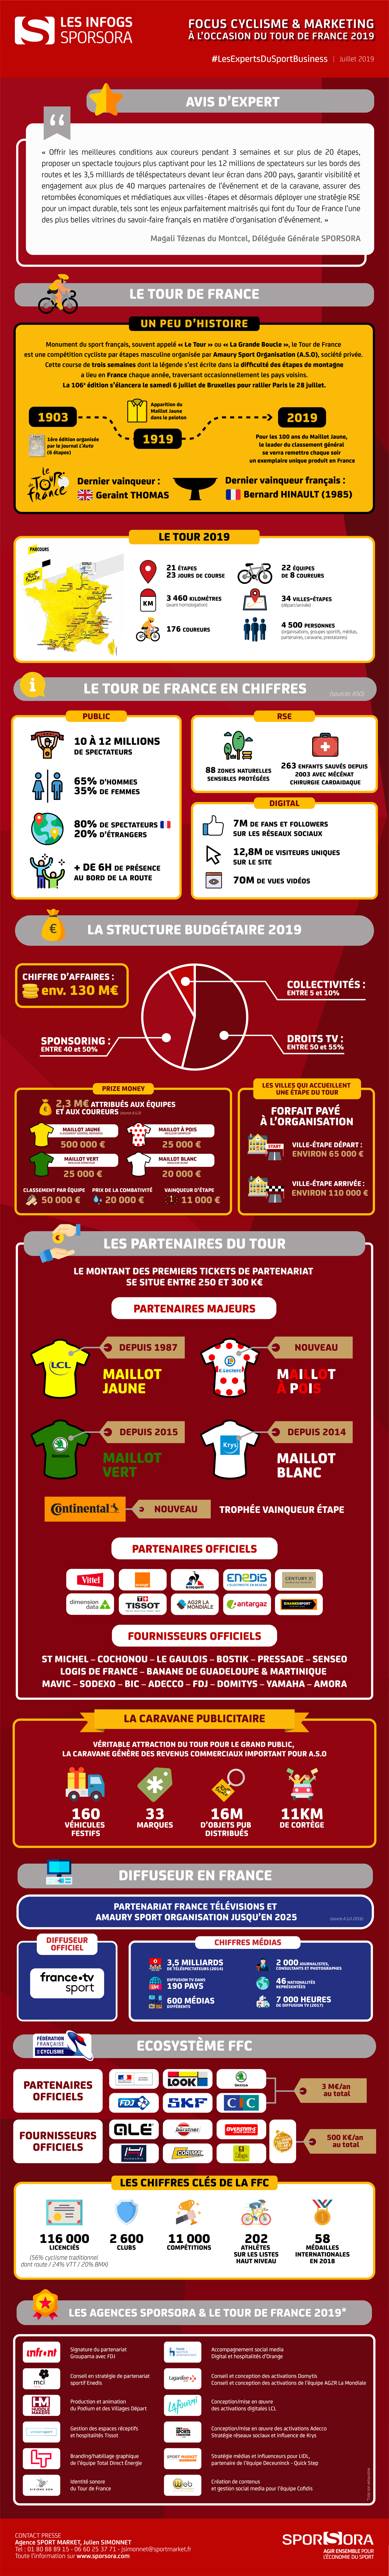 HD Infographie Sporsora Tour de France 2019